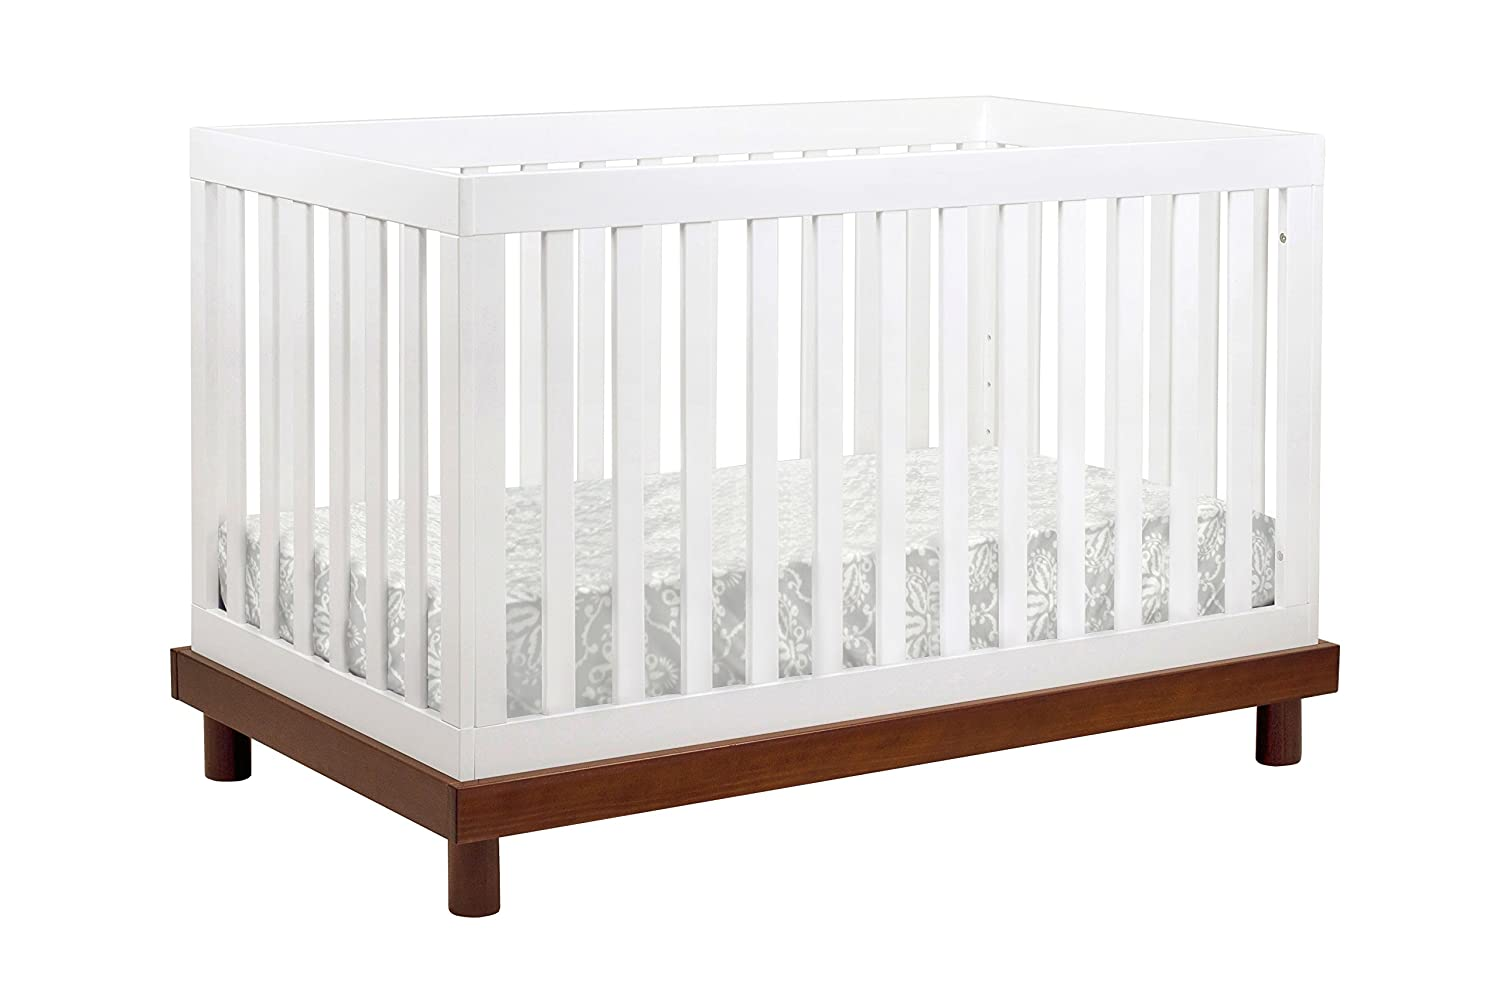 amazoncom  baby mod olivia in convertible crib with toddler  - amazoncom  baby mod olivia in convertible crib with toddler bedconversion kit  baby